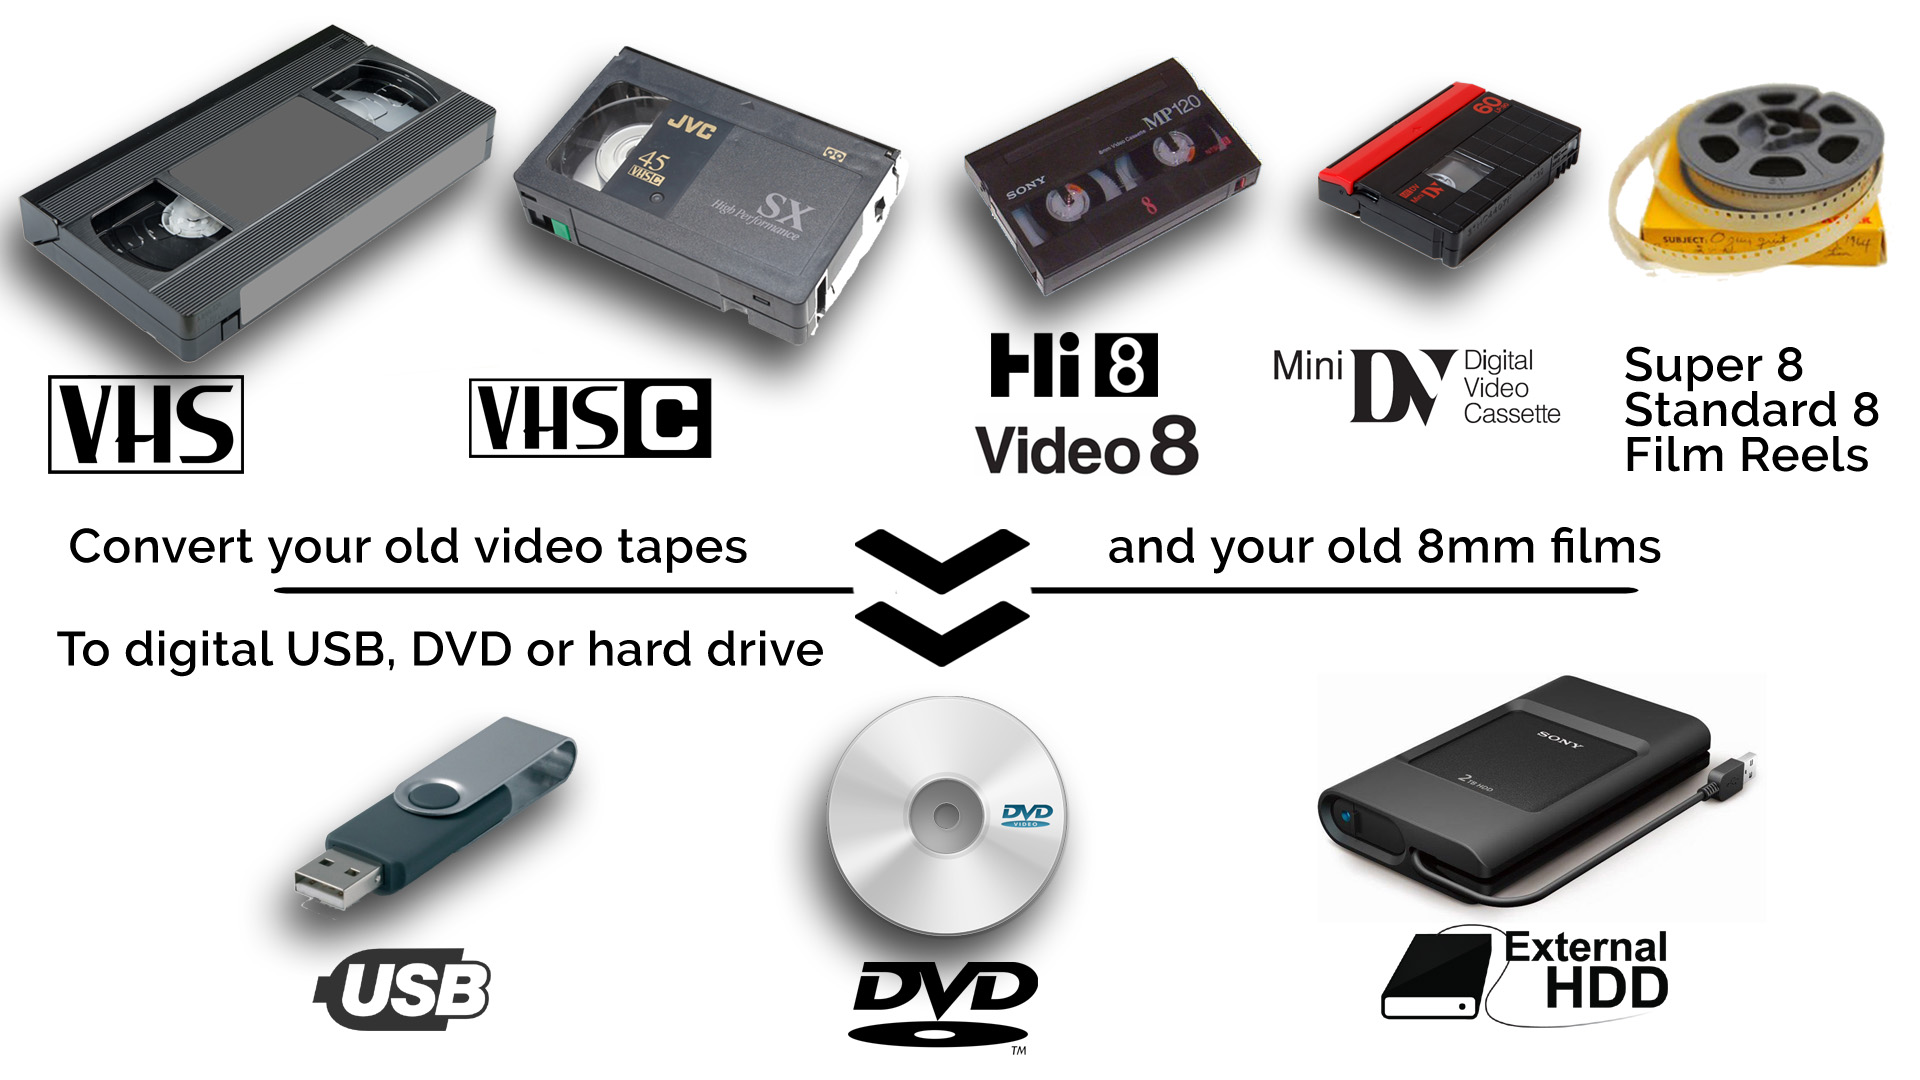 Convert Your Old Vhs Vcr Camcorder Video Tapes To Digital Video Essentials